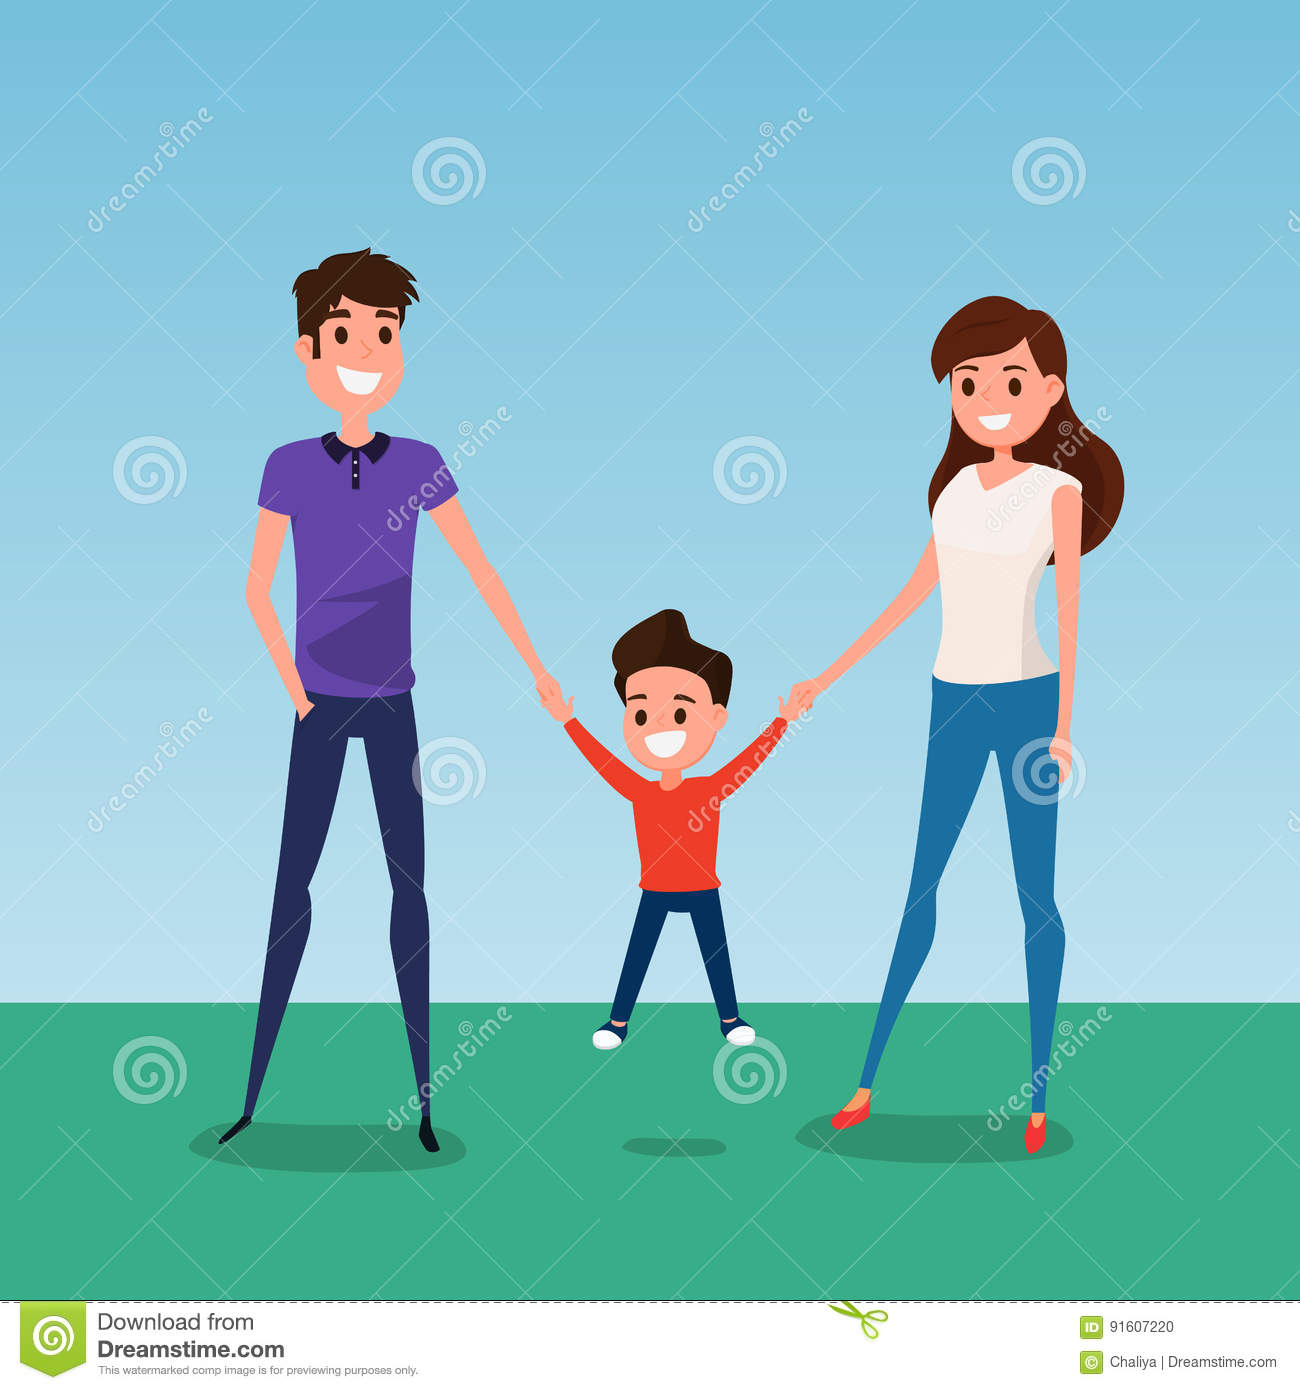 Happy family walking together and hold in hand. Father mother and son. Flat design style.